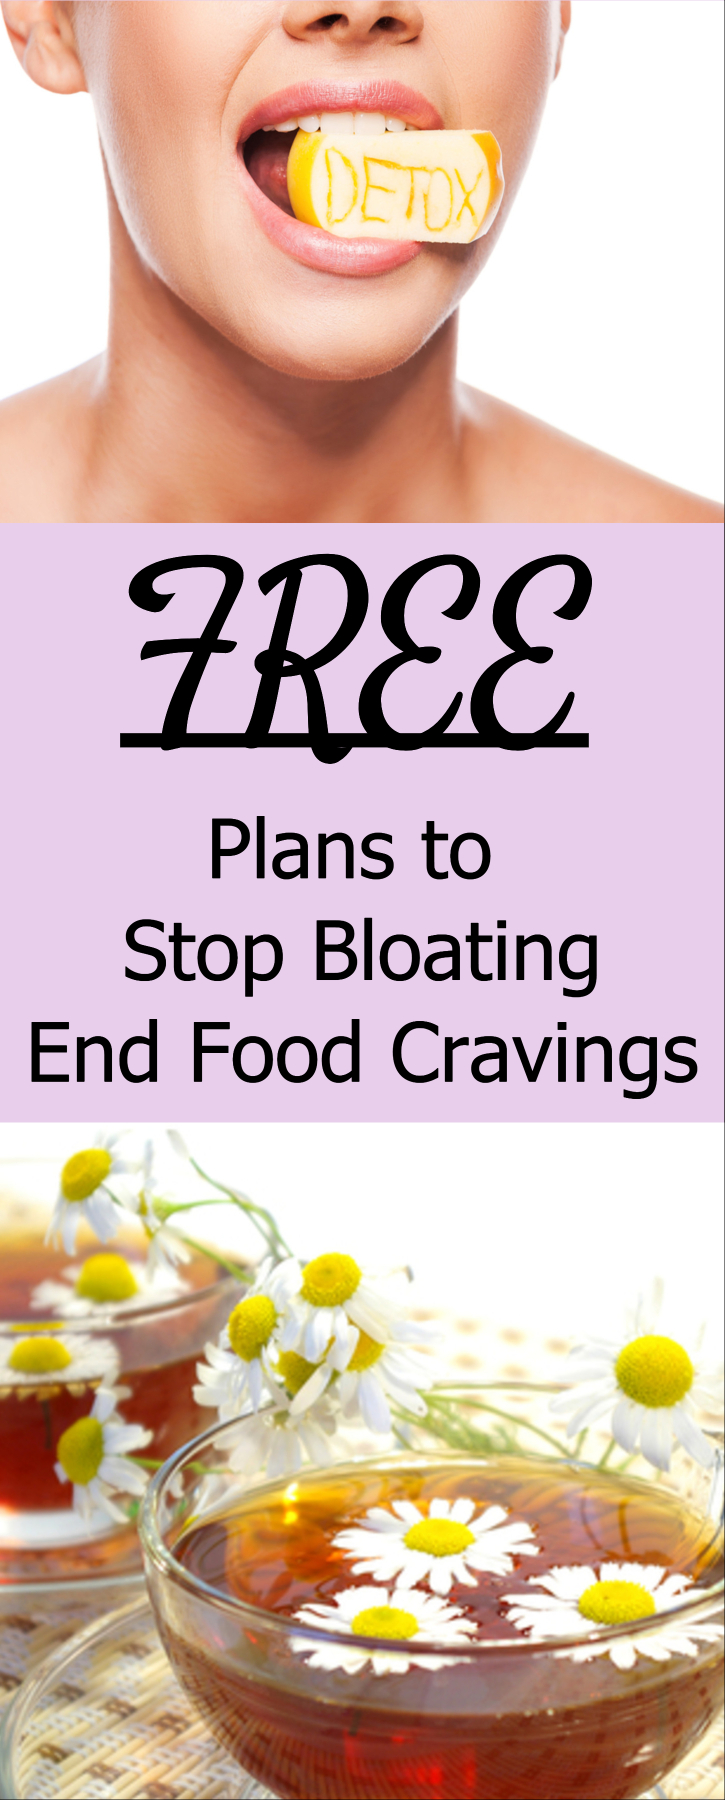 Free plans to stop bloating & end food cravings (sugar detox/ sugar cravings/ jump start weight loss/ free health programs/ free diet programs/ free weight loss/ free diet plan/ free wellness/ overcome cravings/ foods that increase cravings/ free email program)